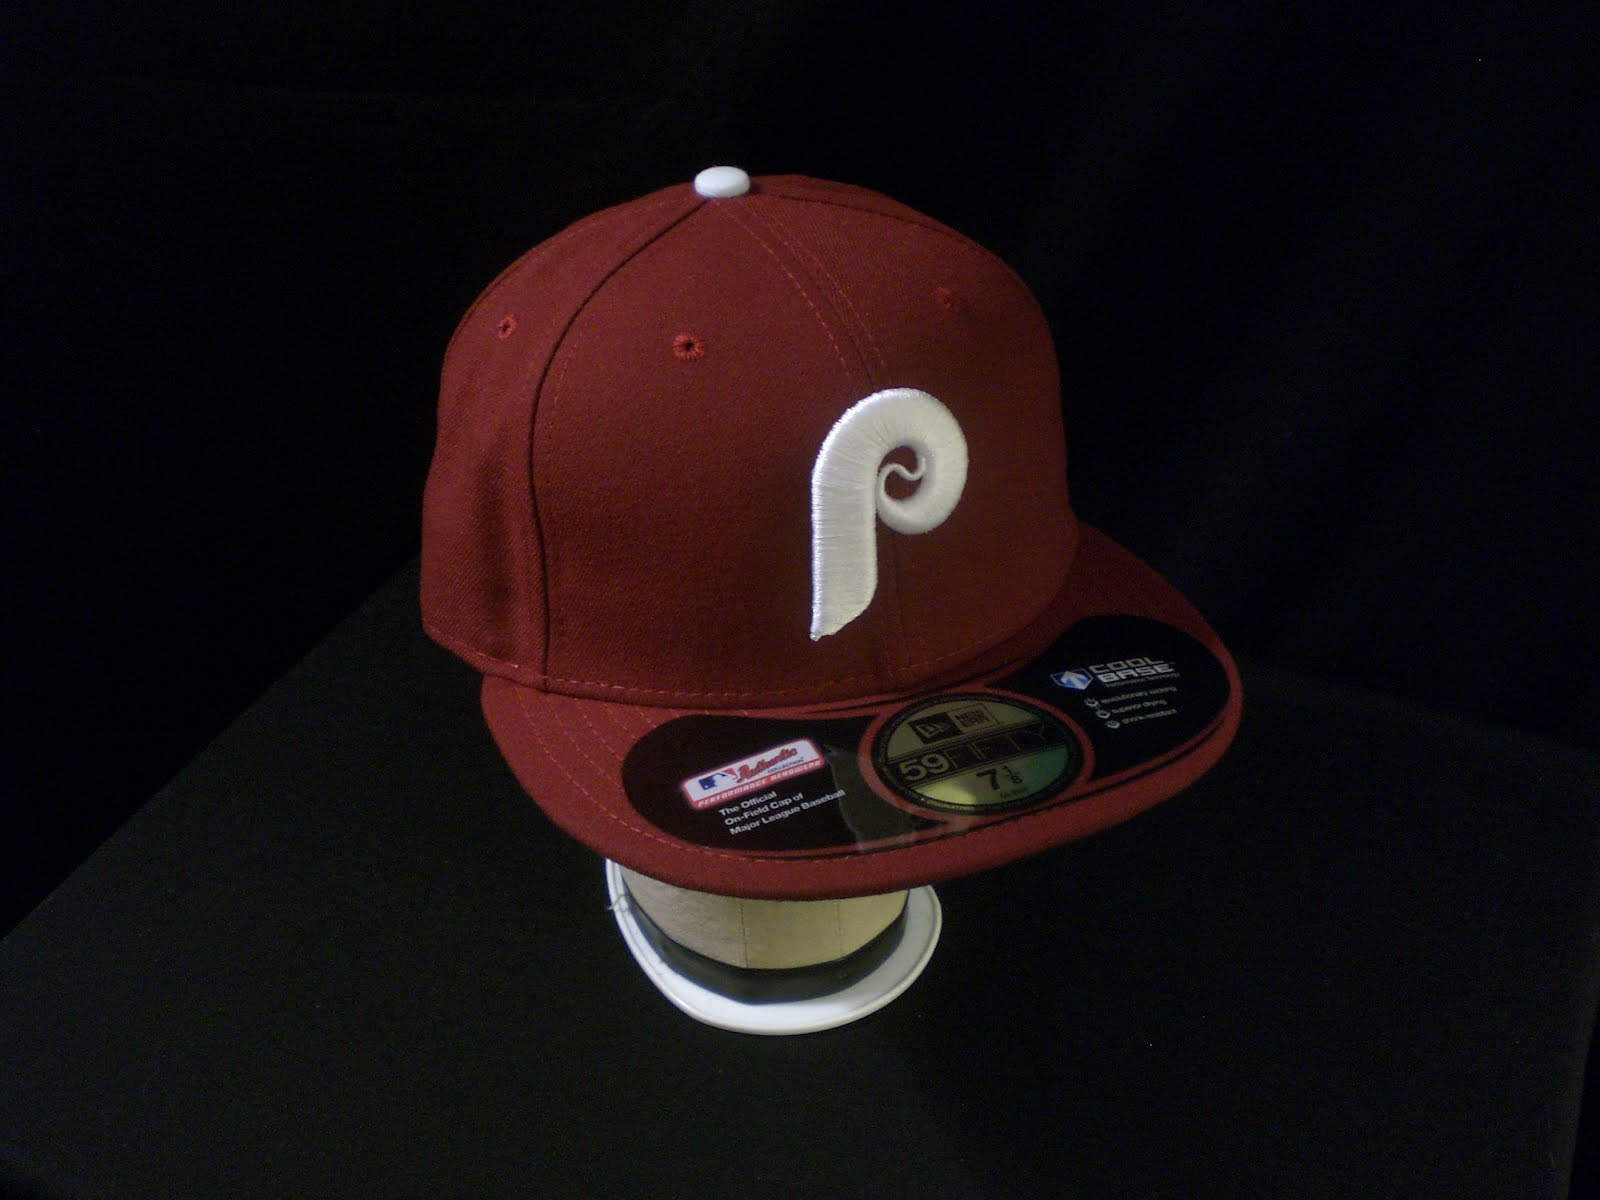 be5a96e3ece This Phillies cap is a base maroon which is a nice throwback and a great  colour match to the originals which were worn from 1970 up until the 1991  season ...